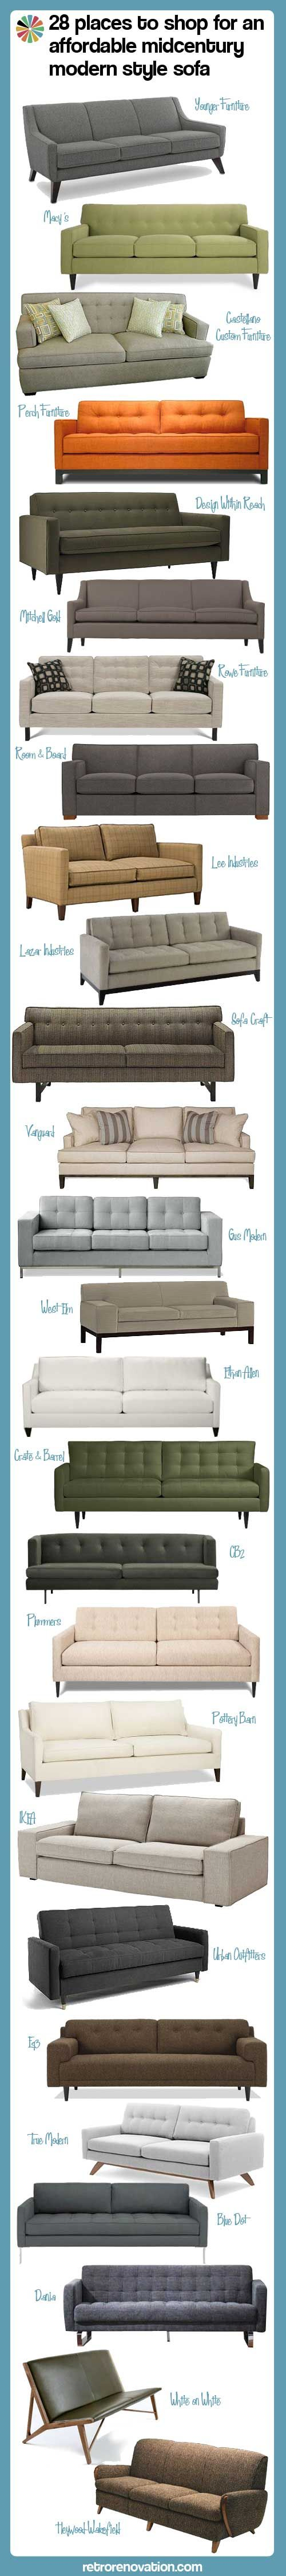 137 best Couch images on Pinterest